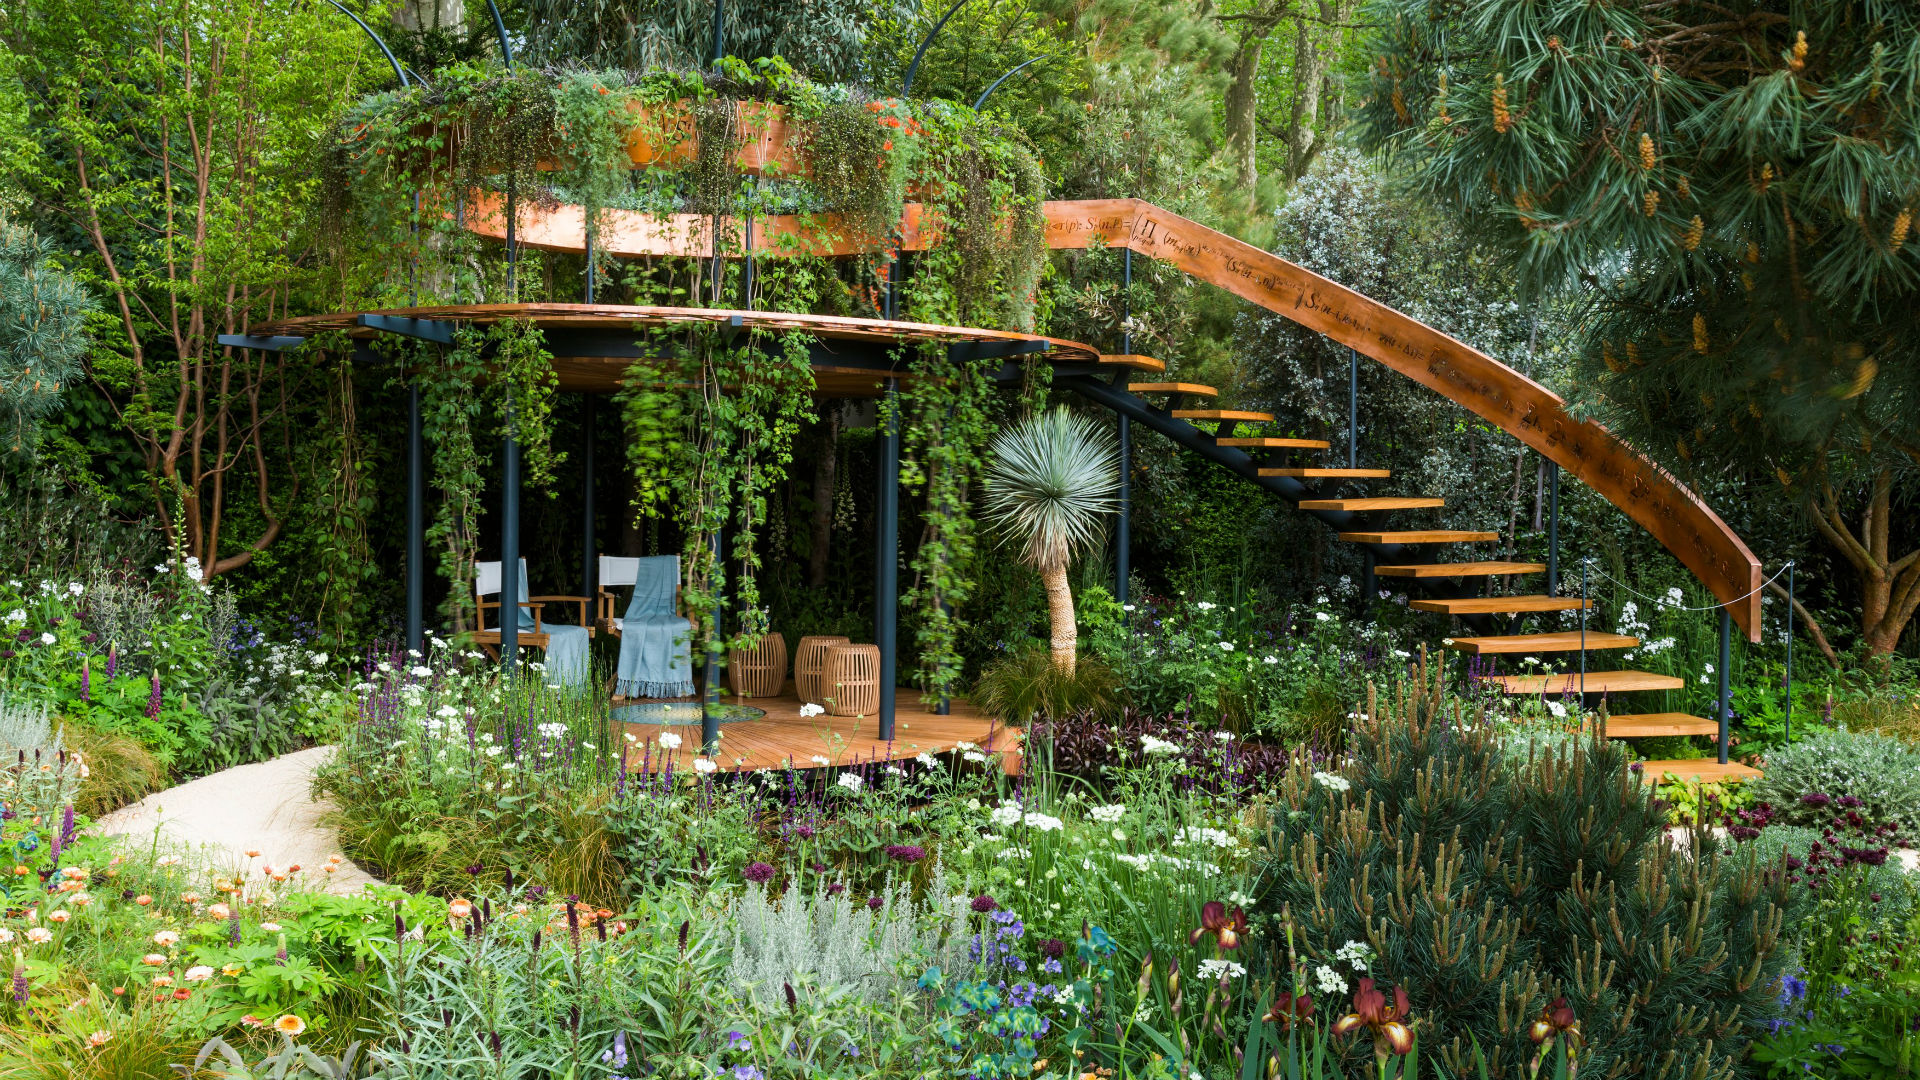 Flowers fill the The Winton Beauty of Mathematics Garden at RHS Chelsea Flower Show.